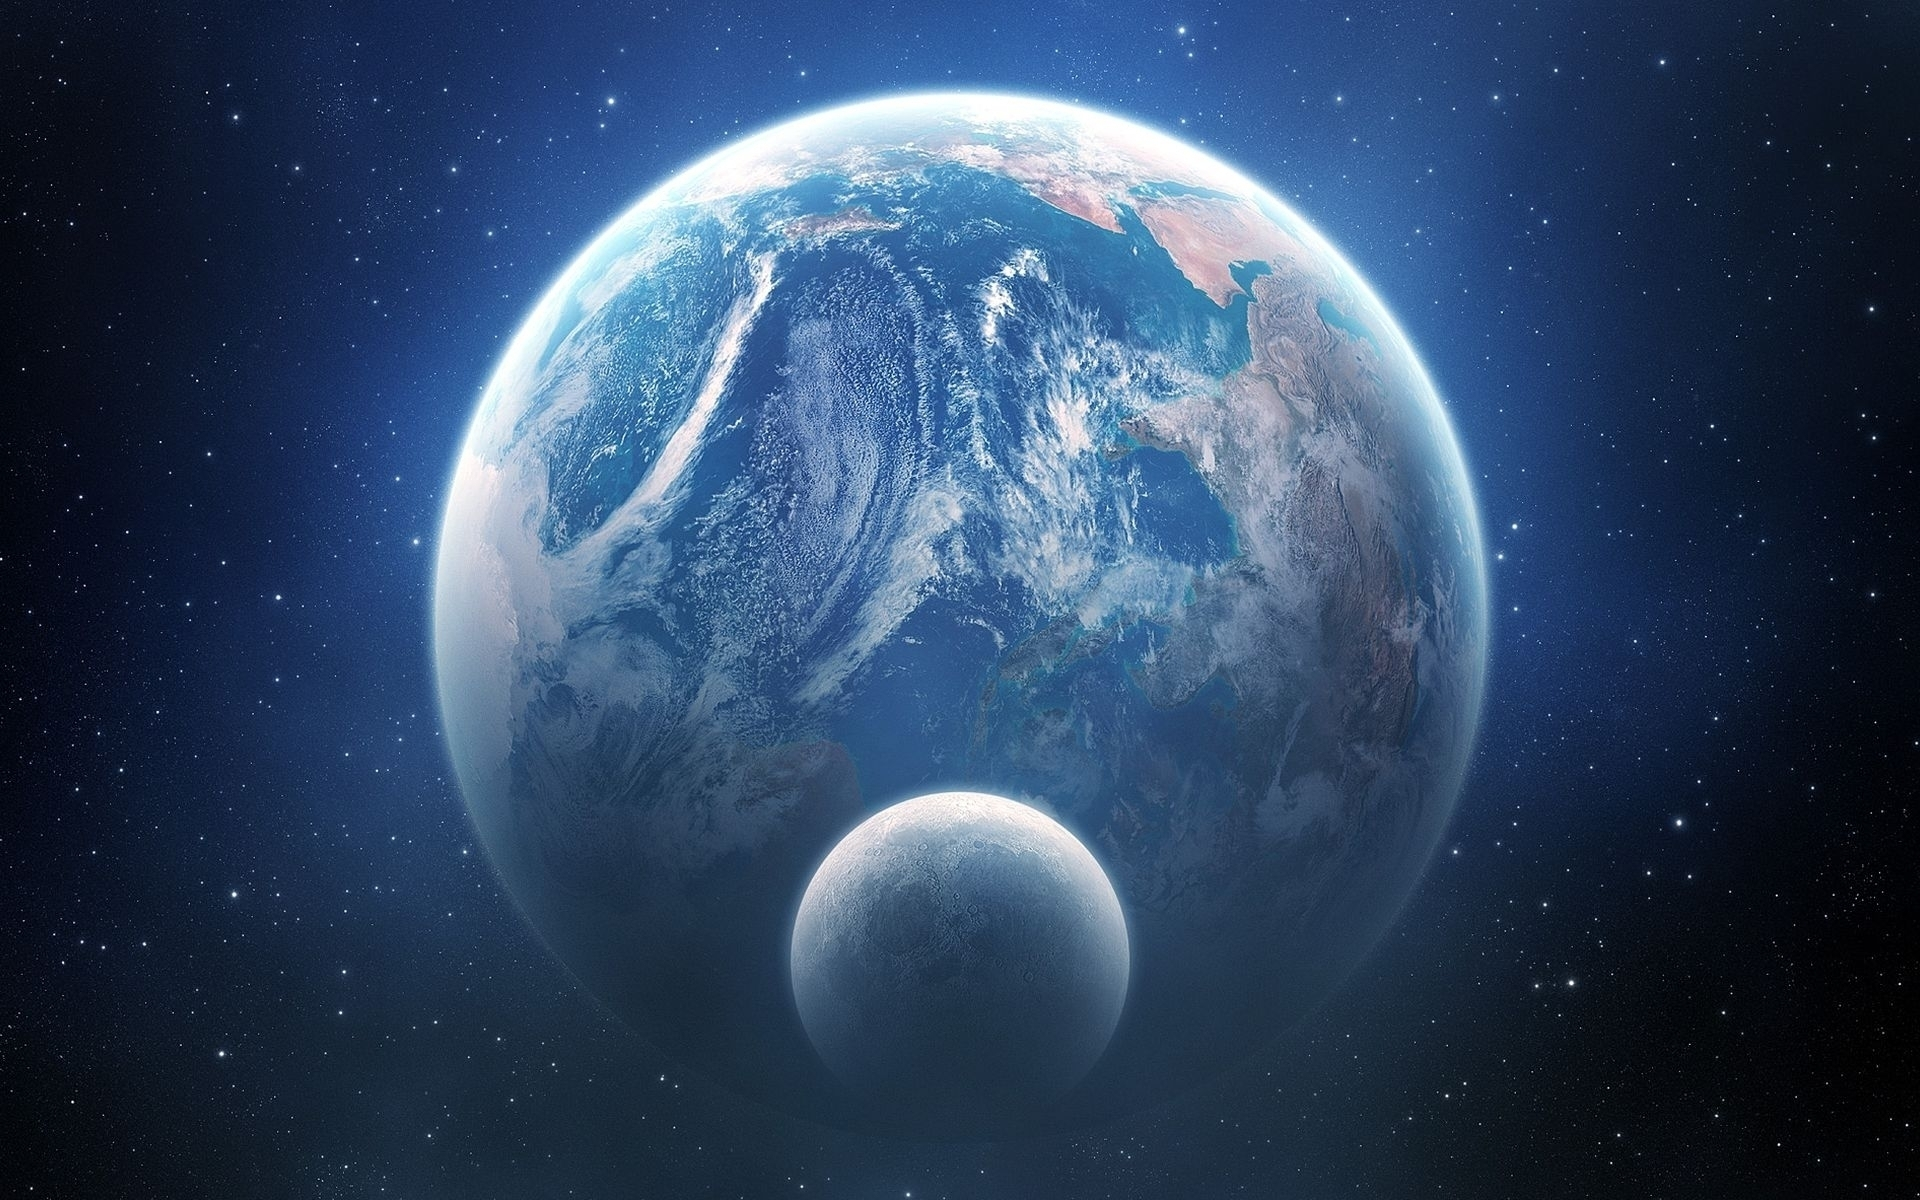 View Earth From Space Hd Wallpaper Wallpaperfx